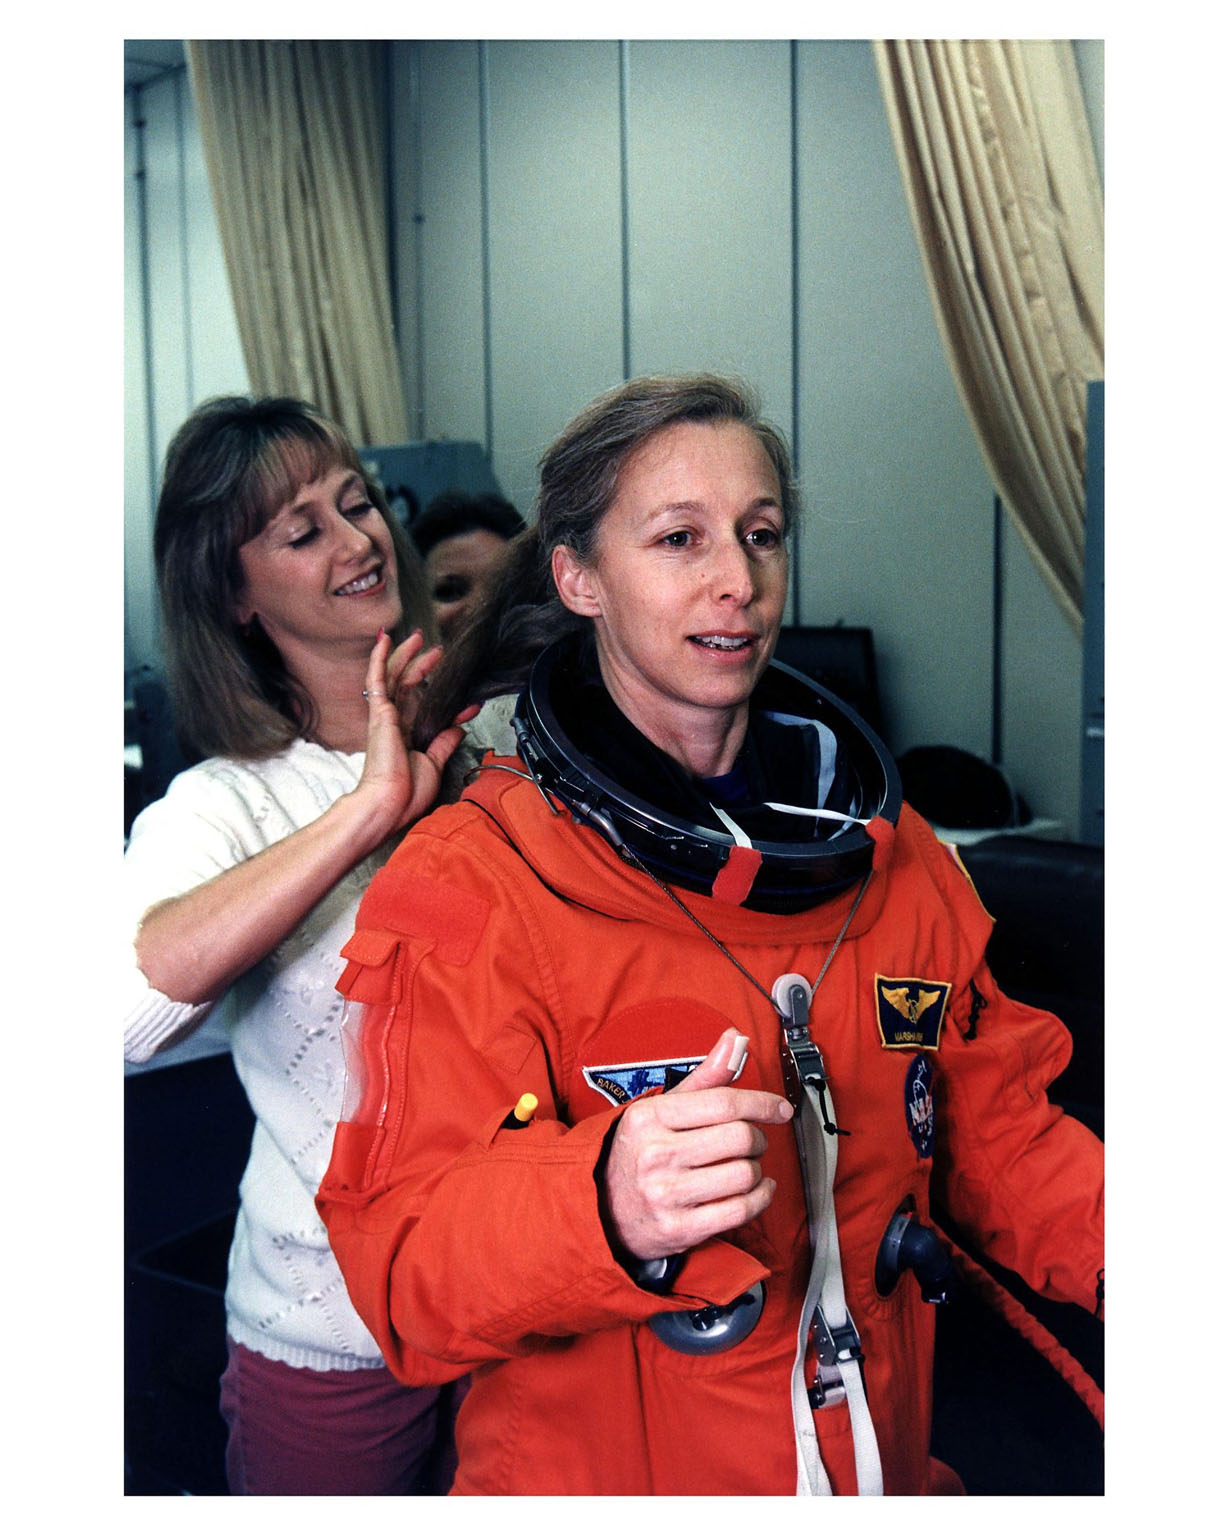 STS-81 Mission Specialist Marsha S. Ivins gets a helping hand from a suit technician as she prepares to don the helmet of her launch/entry suit in the suitup room of the Operations and Checkout (O&C) Building. She is the veteran of three Shuttle flights and became an astronaut in 1984. Among other responsibilities, Ivins will perform photo and video surveys of the Russian Mir space station and operate the Kidsat experiment camera on the orbiter?s aft flight deck. She and five crew members will shortly depart the O&C and head for Launch Pad 39B, where the Space Shuttle Atlantis will lift off during a 7-minute window that opens at 4:27 a.m. EST, January 12